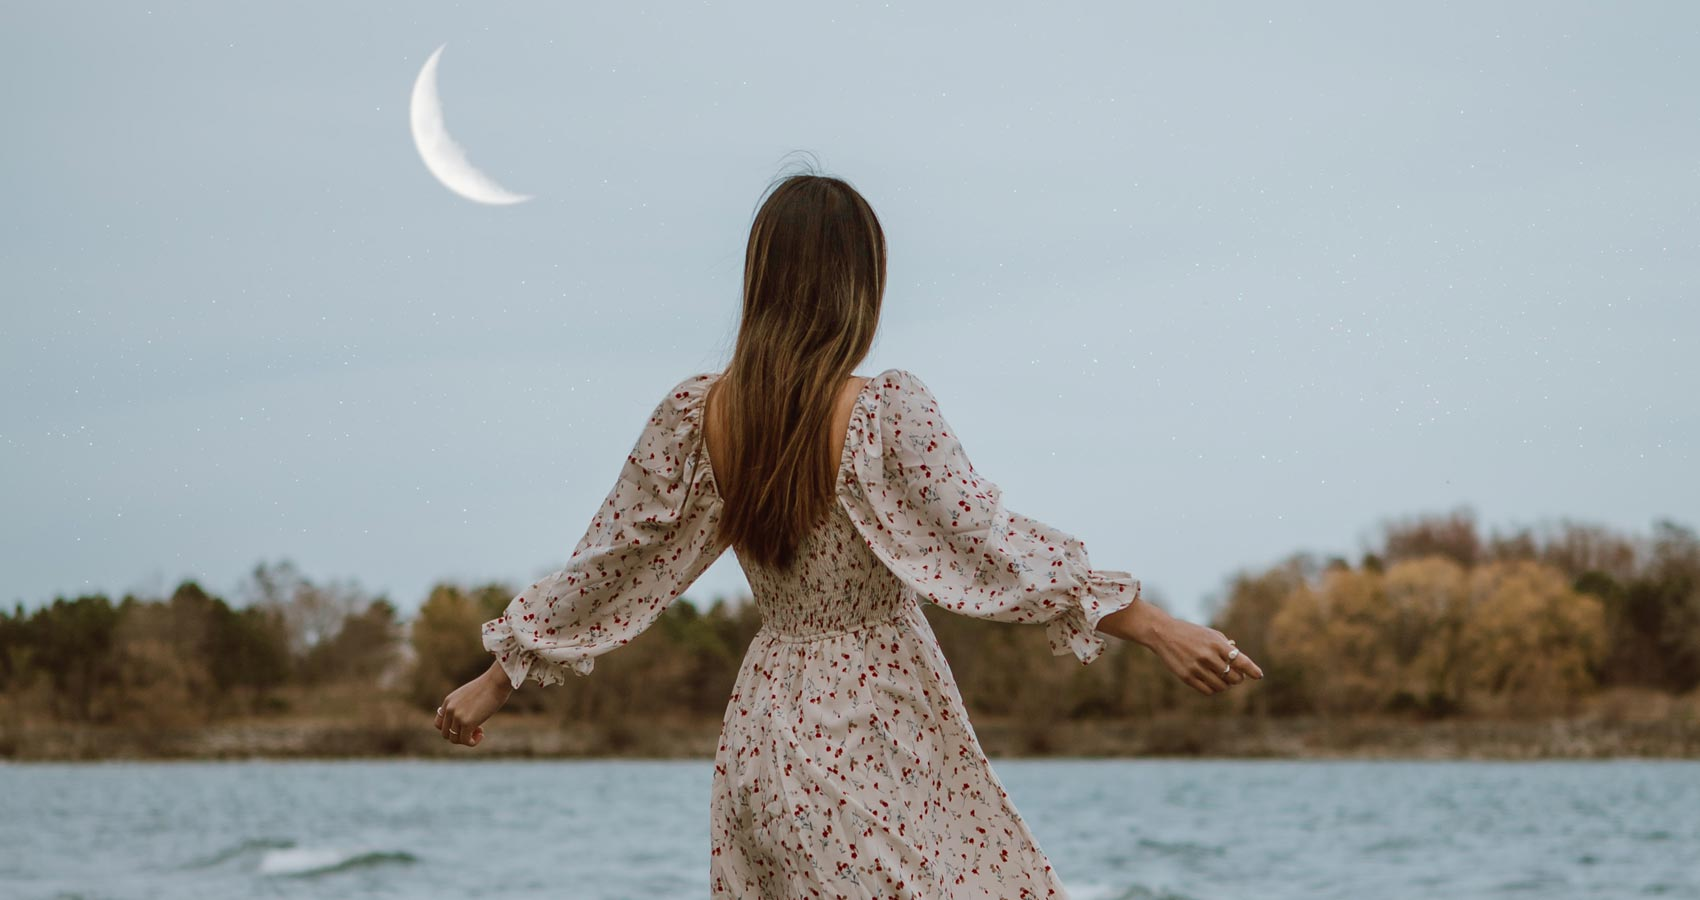 Over The Moon, a poem by Rekha Rajgopal at Spillwords.com